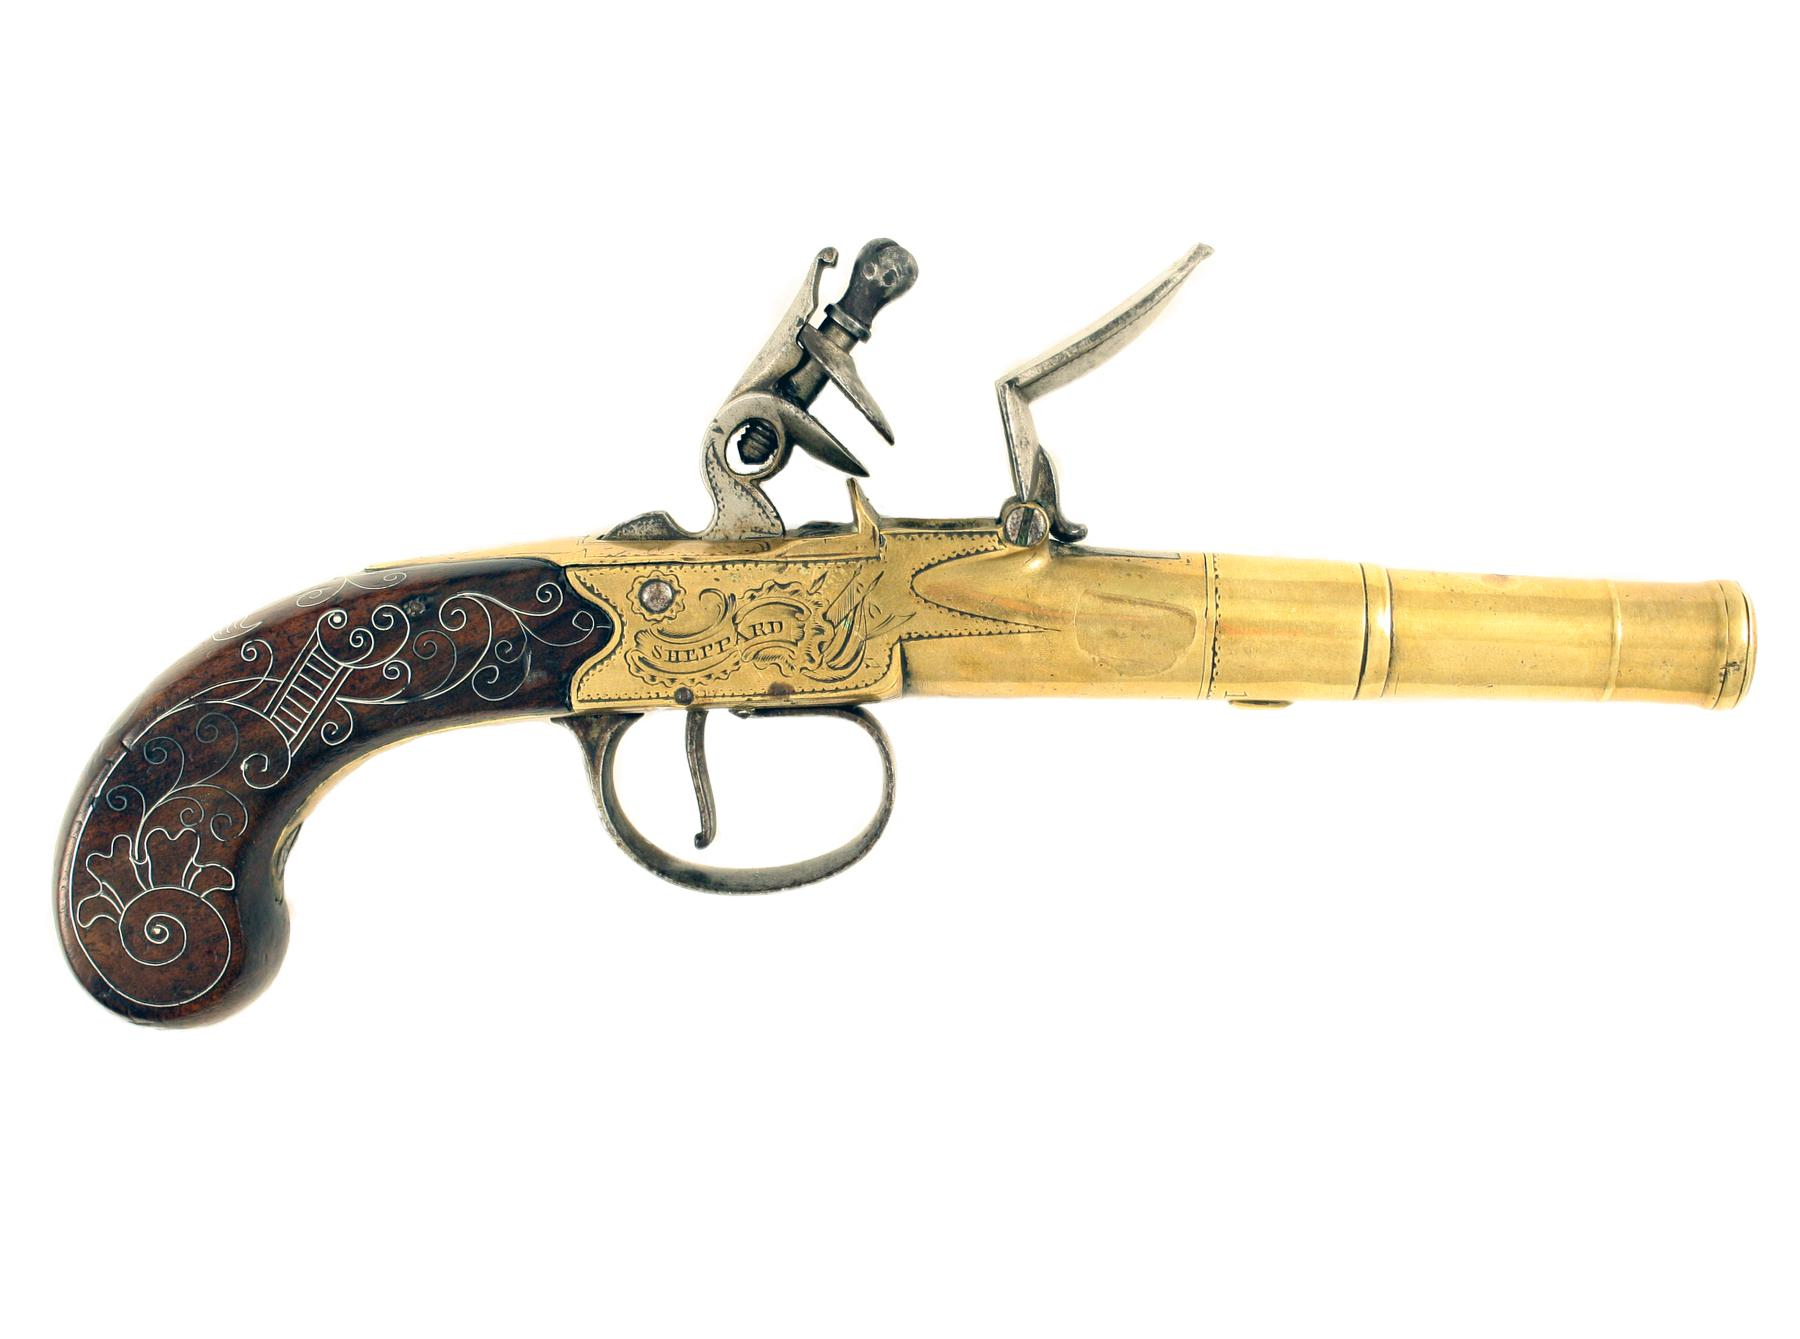 A Silver Inlaid Pistol